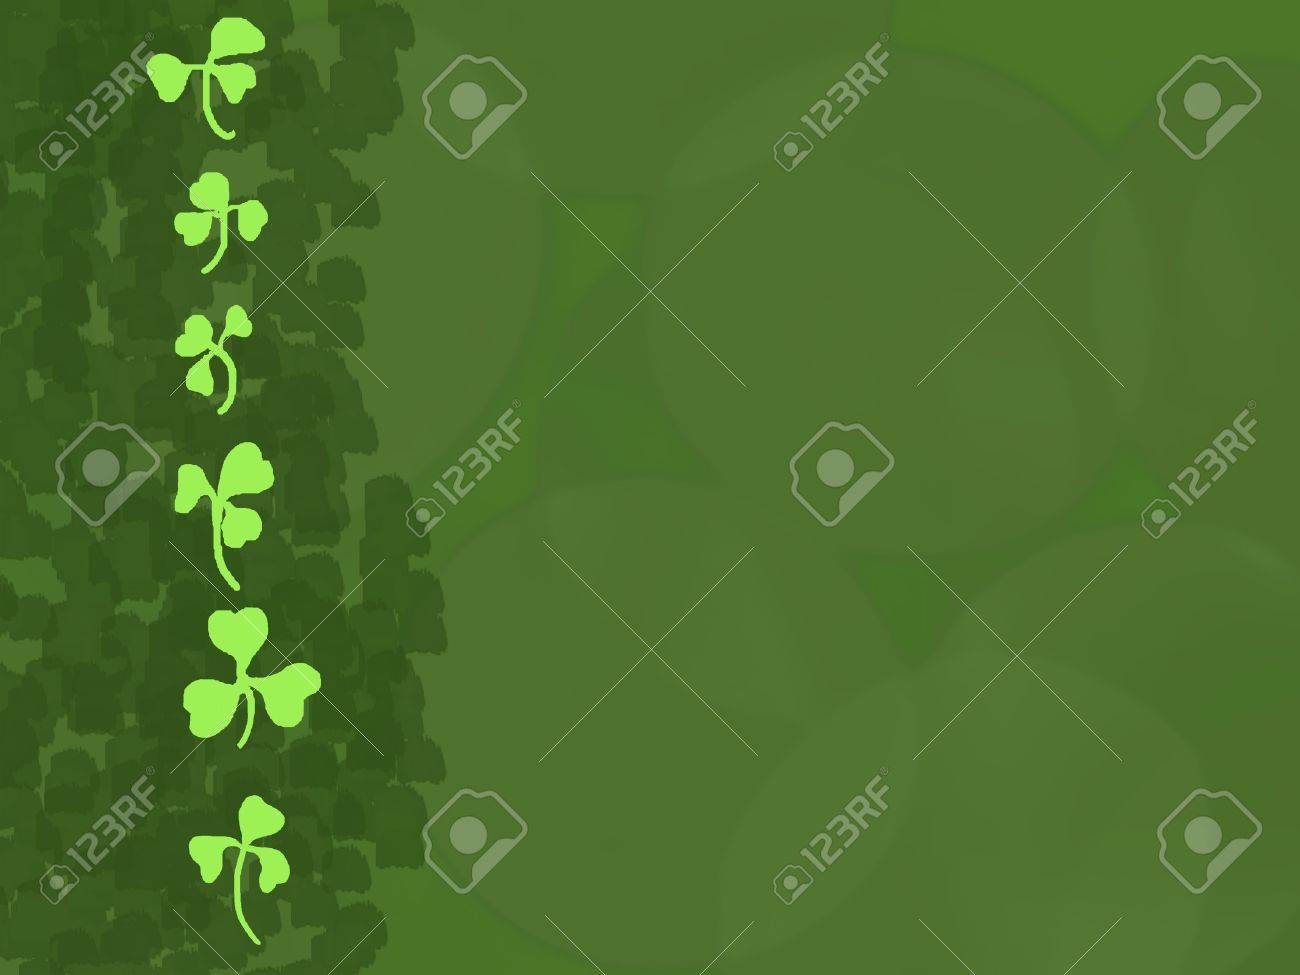 A column of bright green shamrocks as a border on a green background. Stock Vector - 17922280